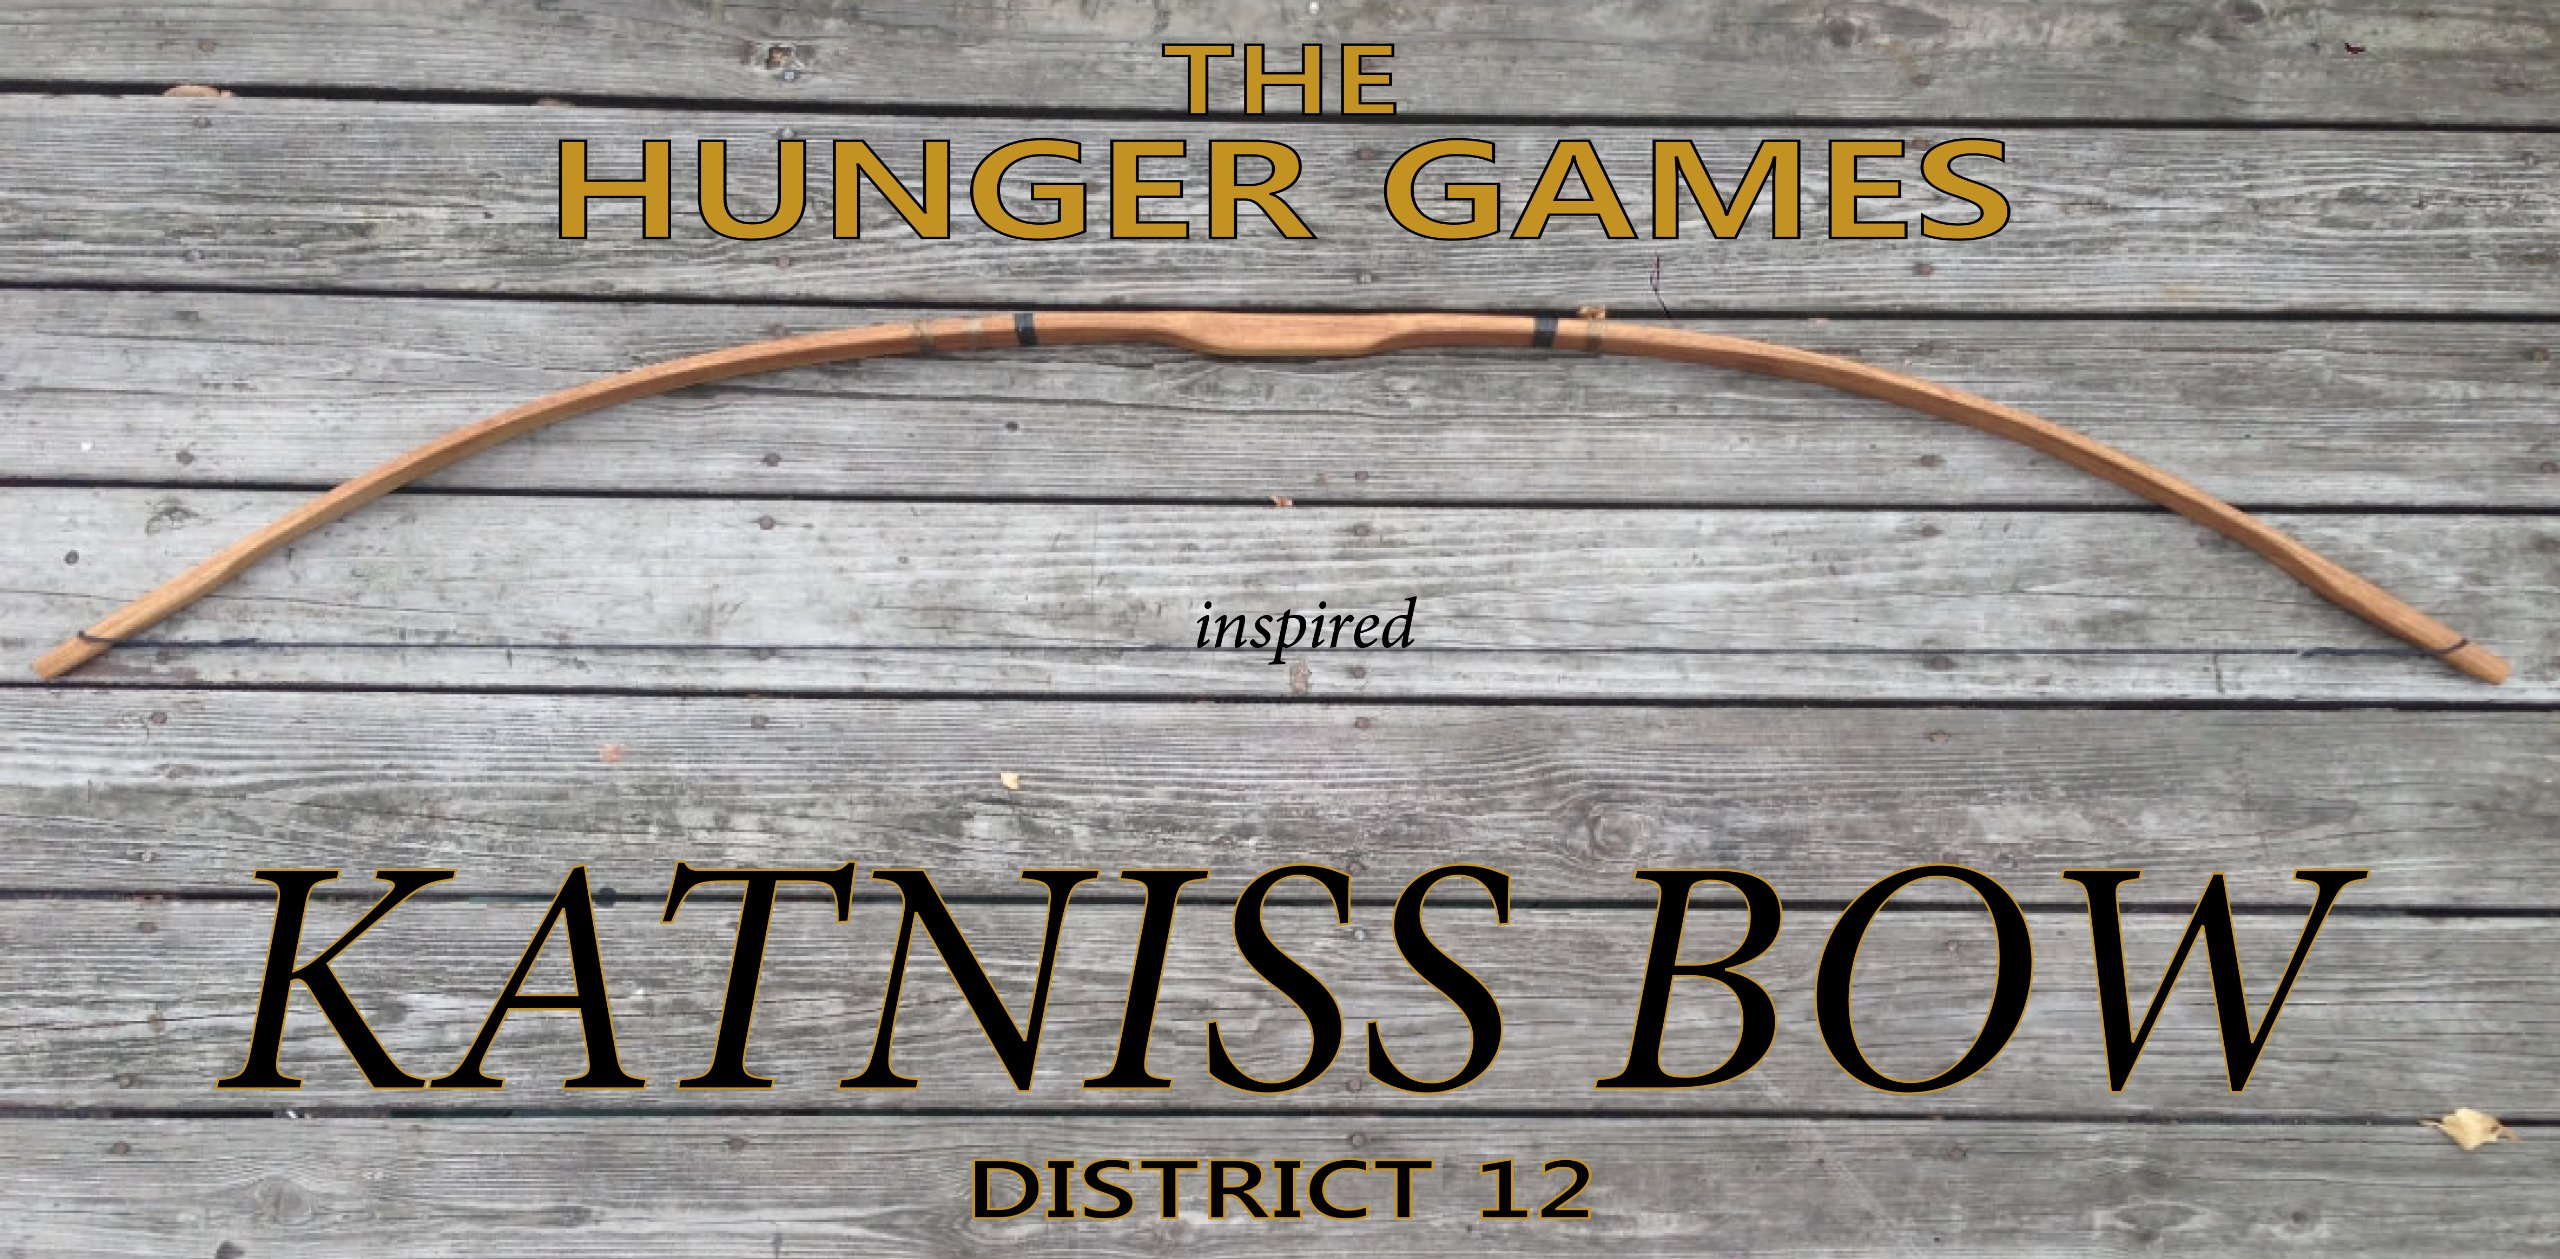 30/35lb Hunger Games inspired - KATNISS BOW! District 12